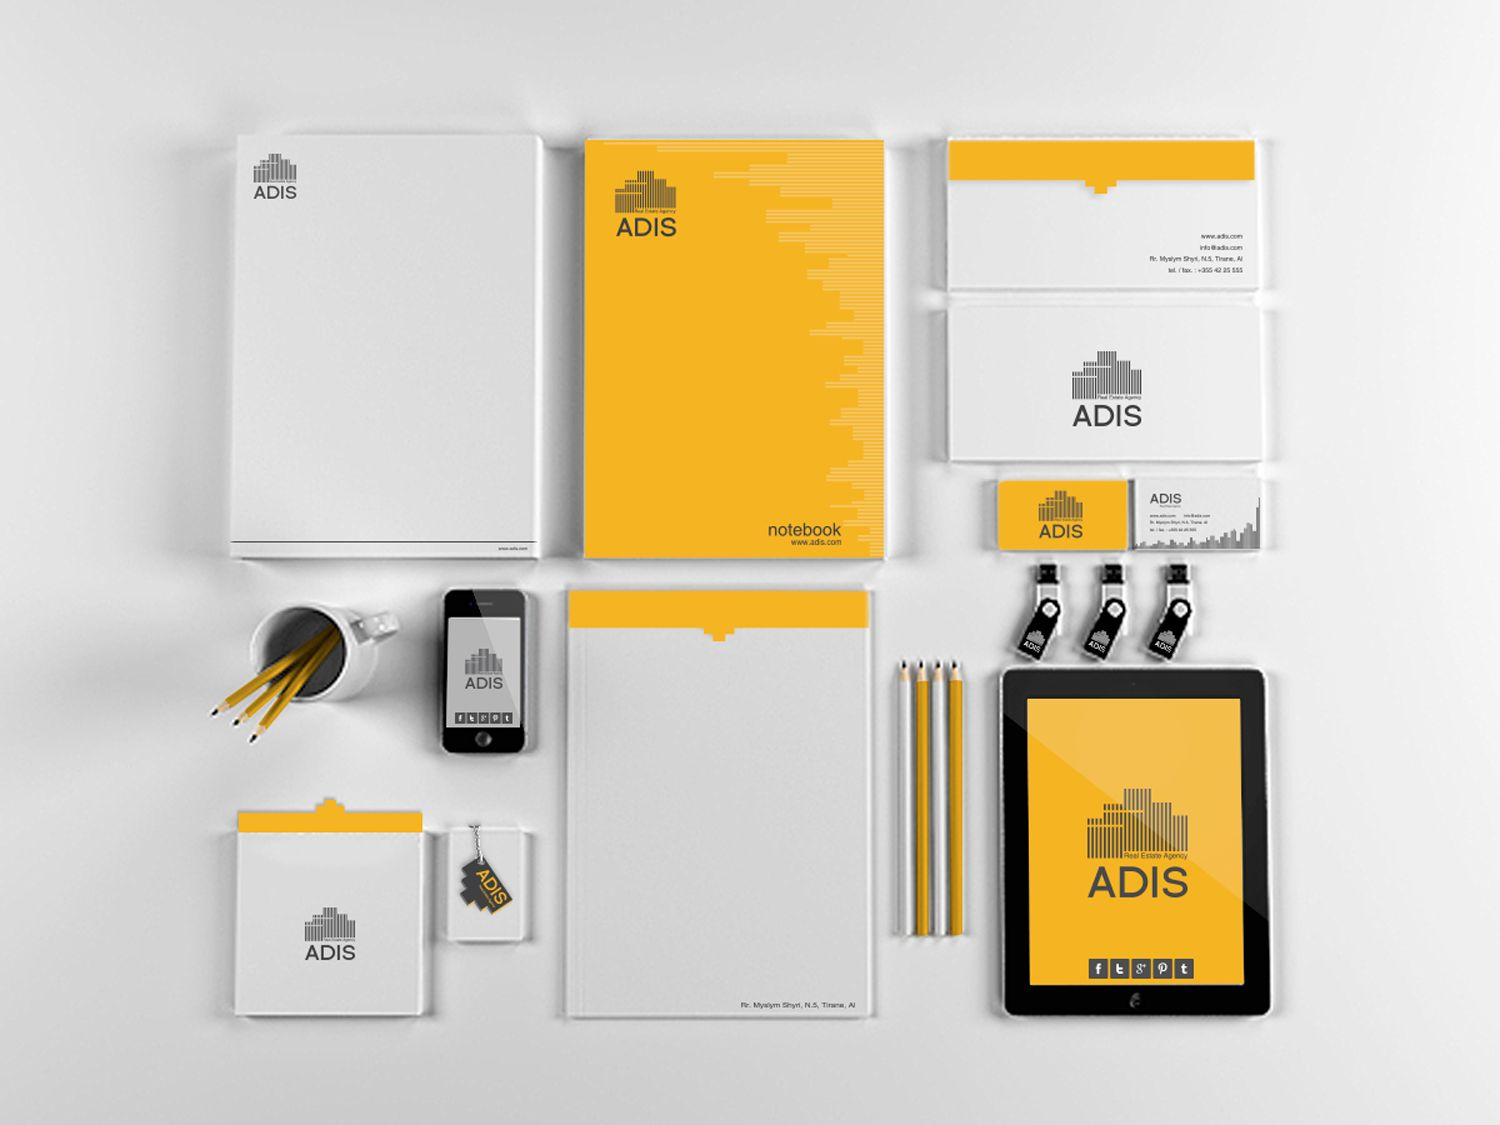 ADIS Real Estate Agency / Branding #branding #creative #stationary  #creative #stationary